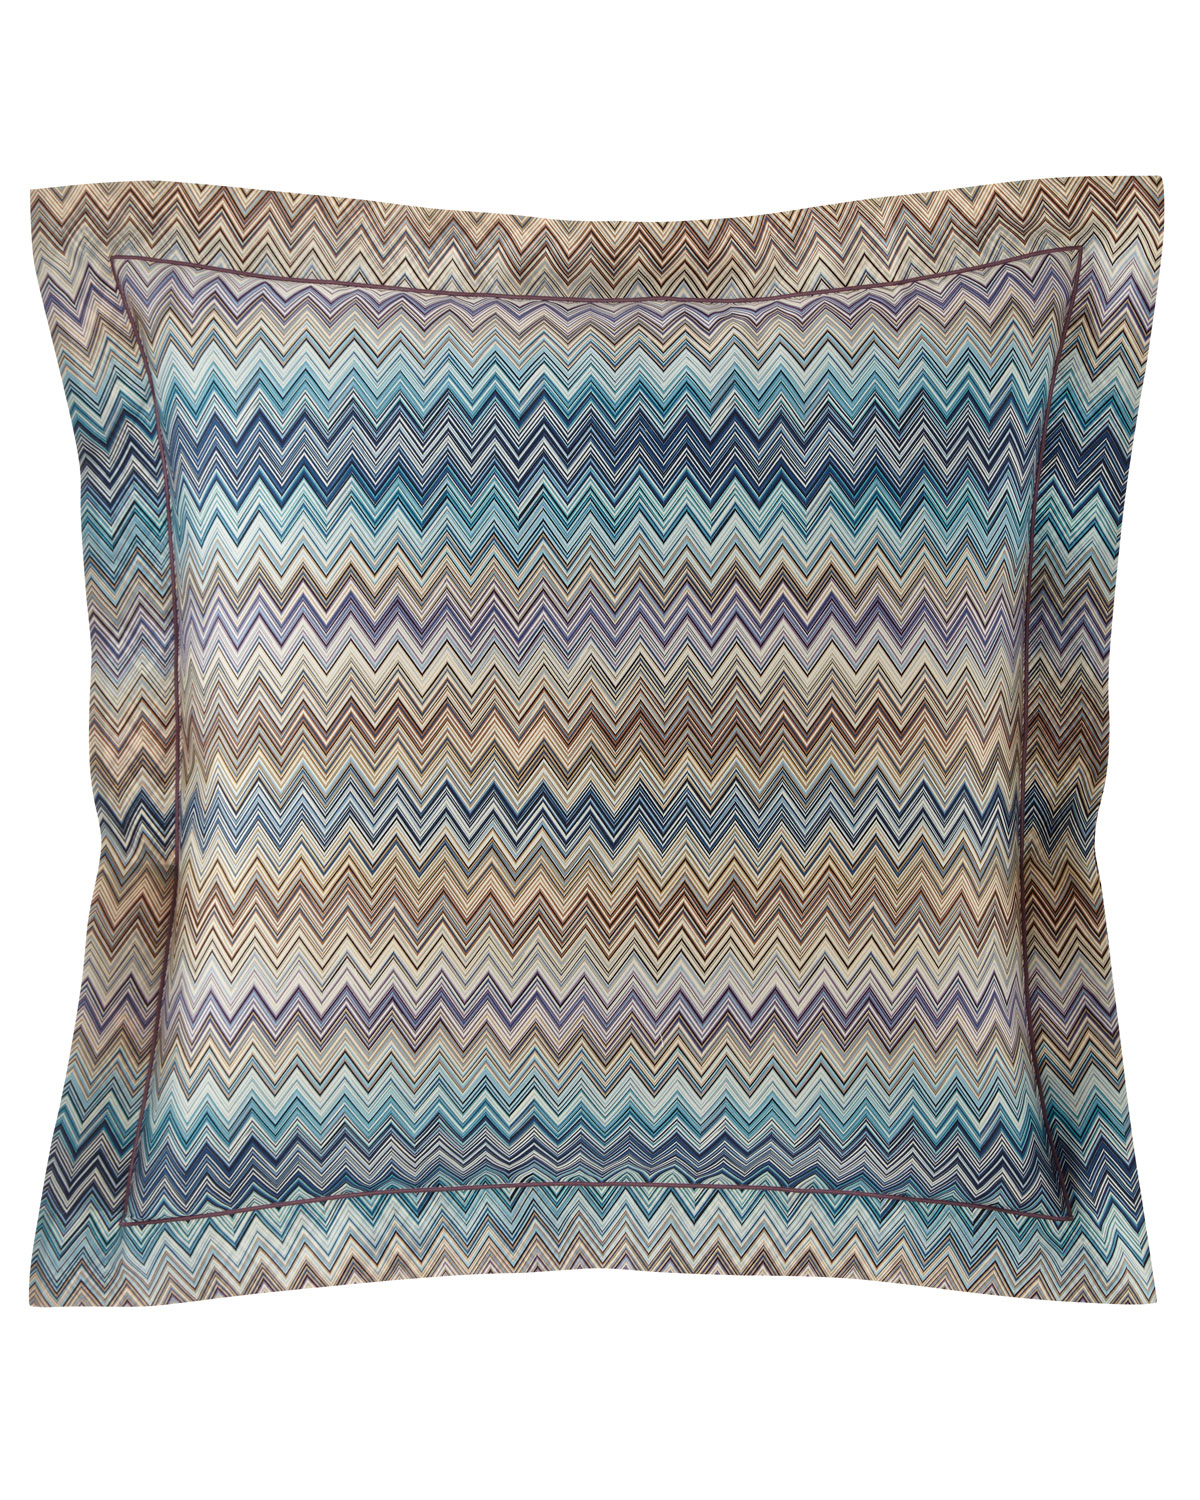 John European Shams, Set Of 2 by Missoni Home